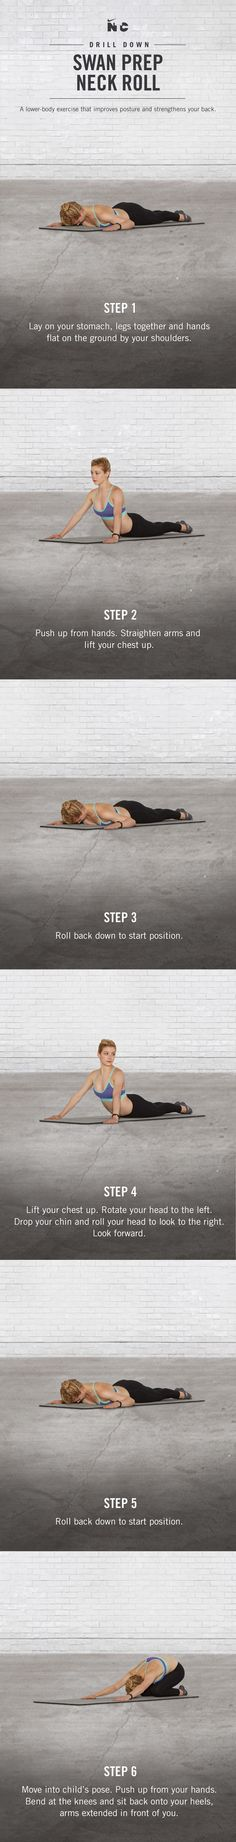 Improve posture and strengthen your back with Swan Prep and Neck Rolls in Gracie Gold's Core Strength workout on Nike+ Training Club.